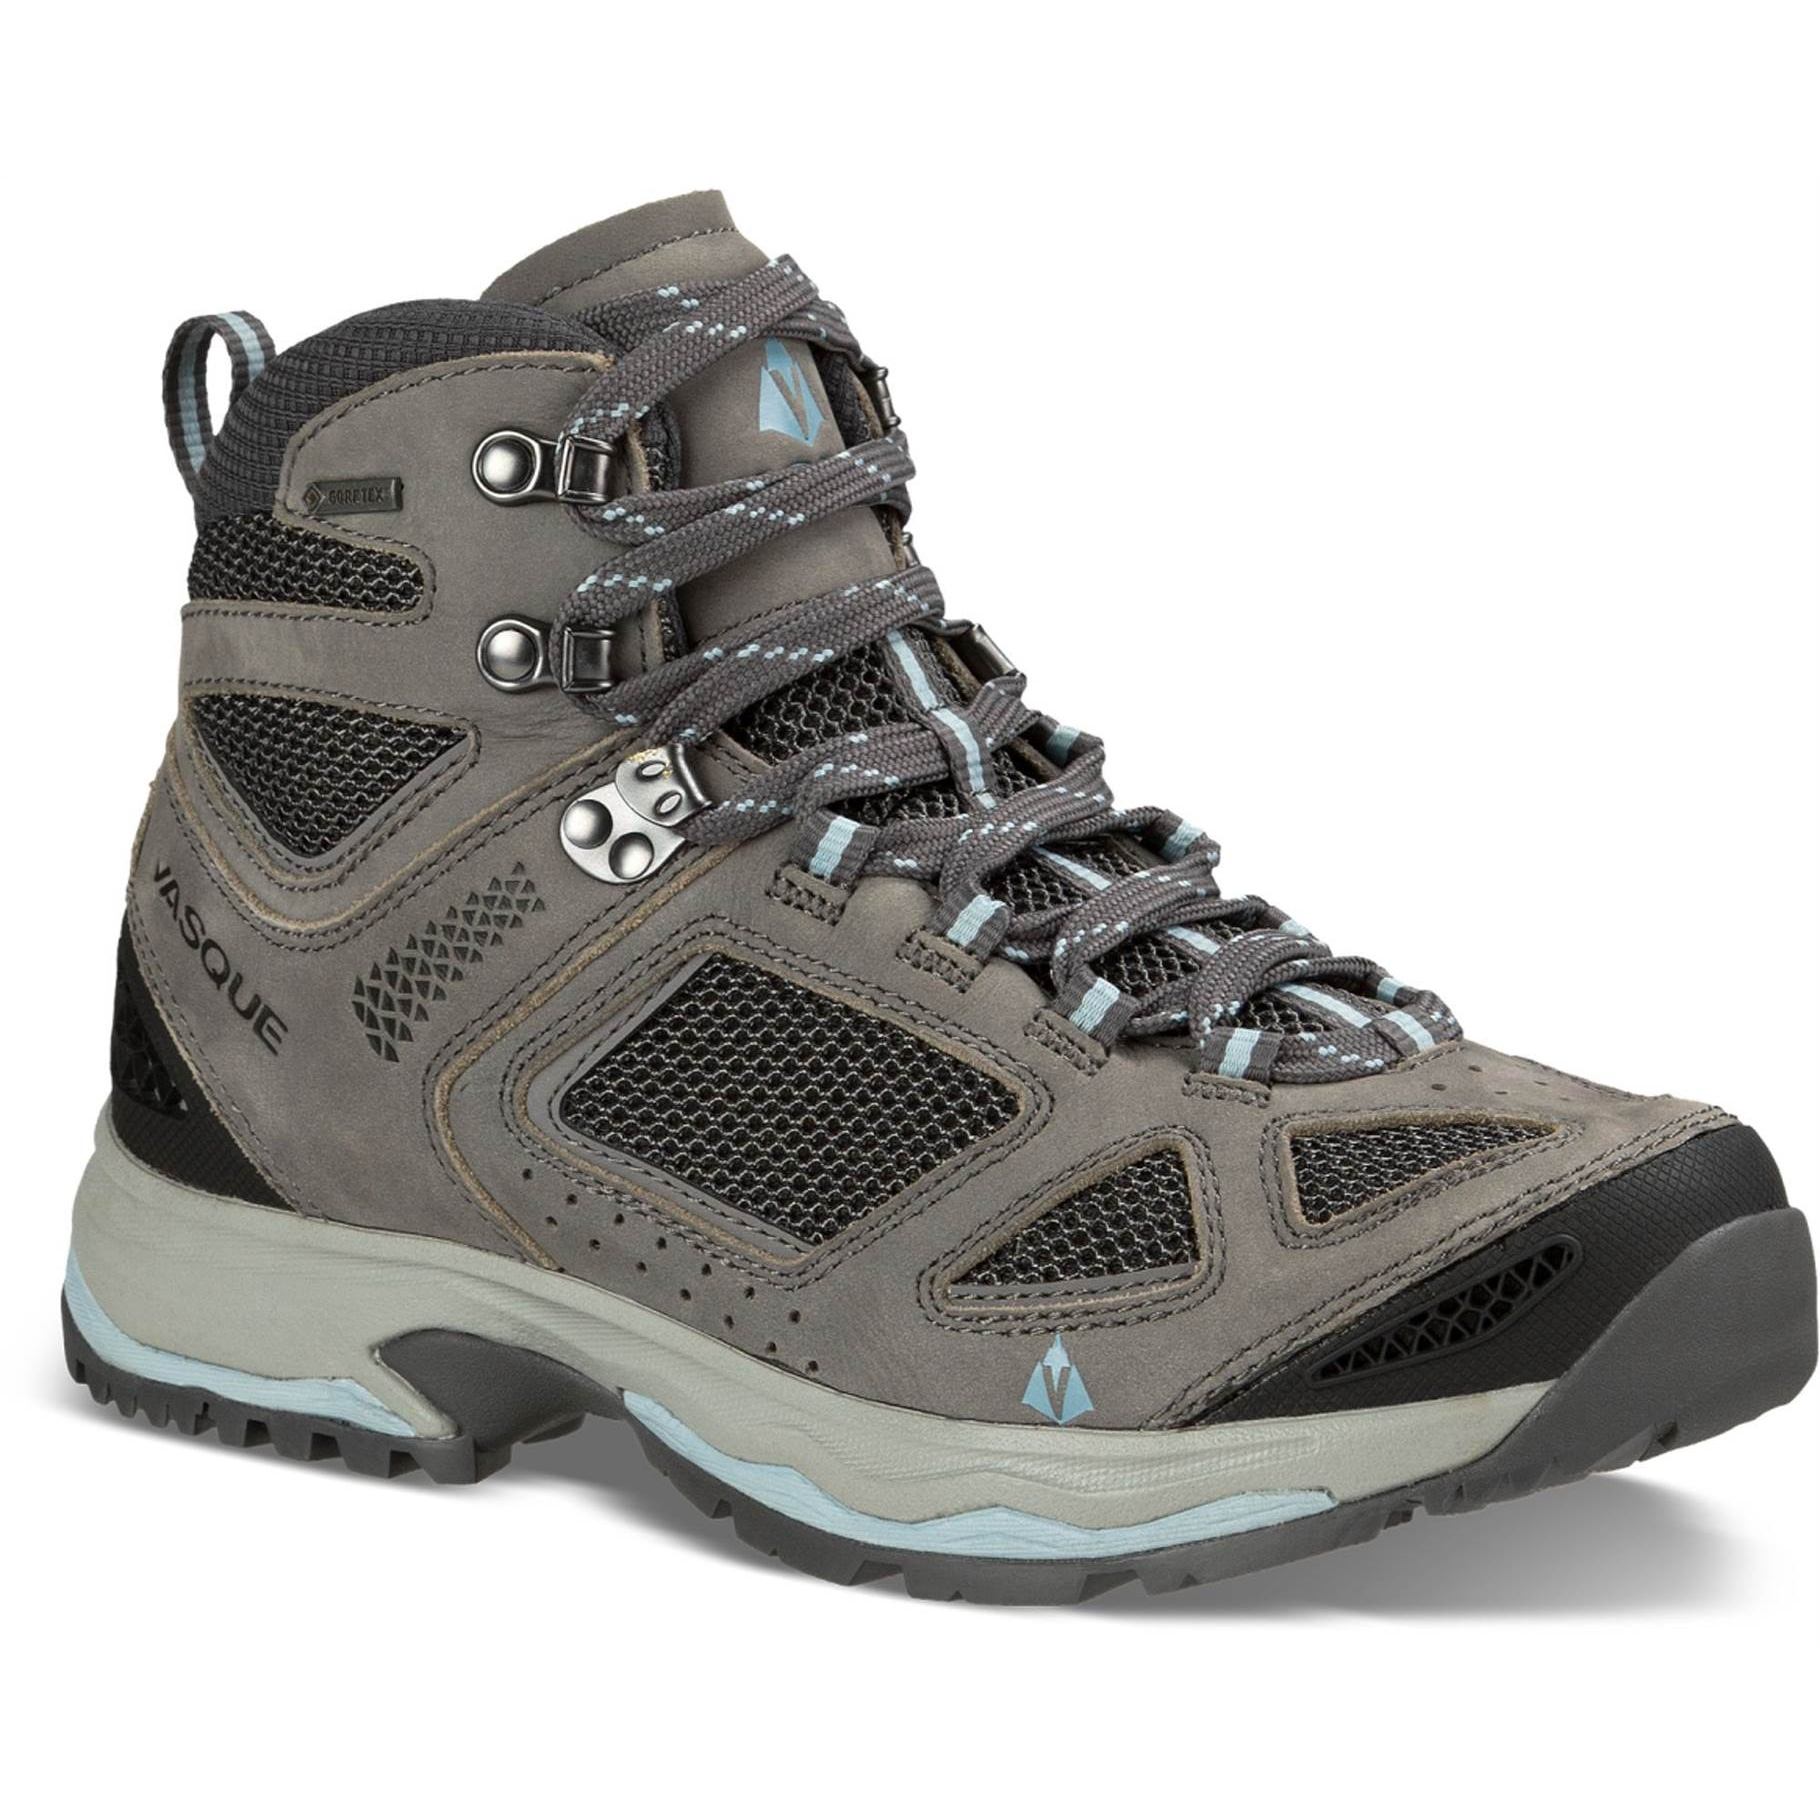 Breeze III GTX Boot - Women's